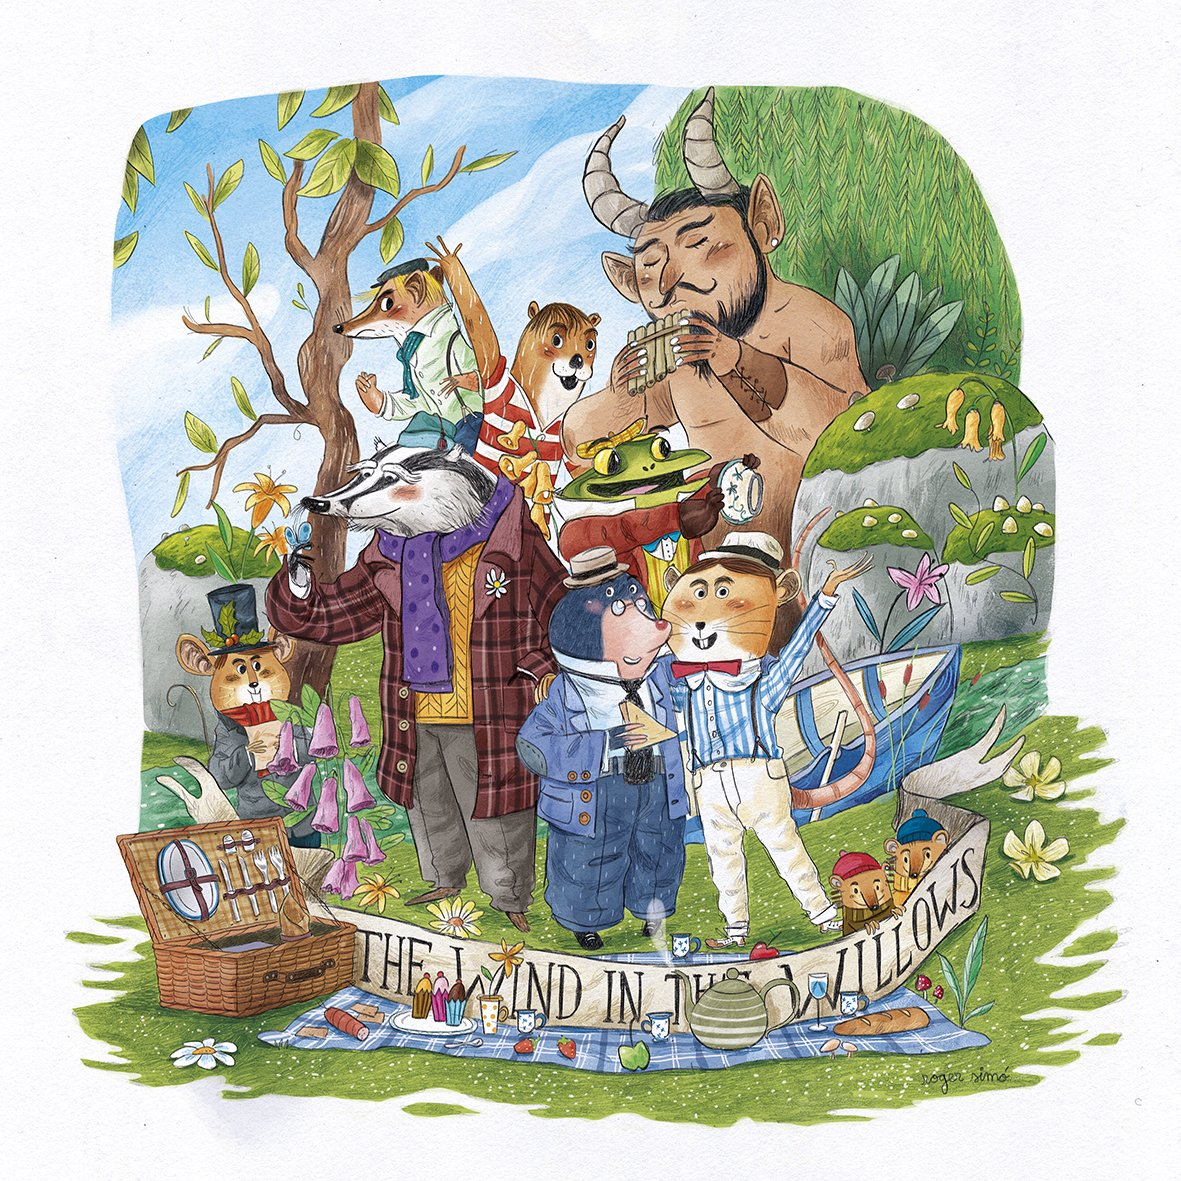 I'm afraid there's not much #Hooker&#39;sGreen in my #colour_collective .  One of my favourite books #TheWindInTheWillows. #kennethgrahame #kidlit #kidlitart #picturebooks #childrensbooks #childrenillustration #PictureBooks #rogersimo #illustration #illustrators #kidlitartist<br>http://pic.twitter.com/Y3Esbjtj9G